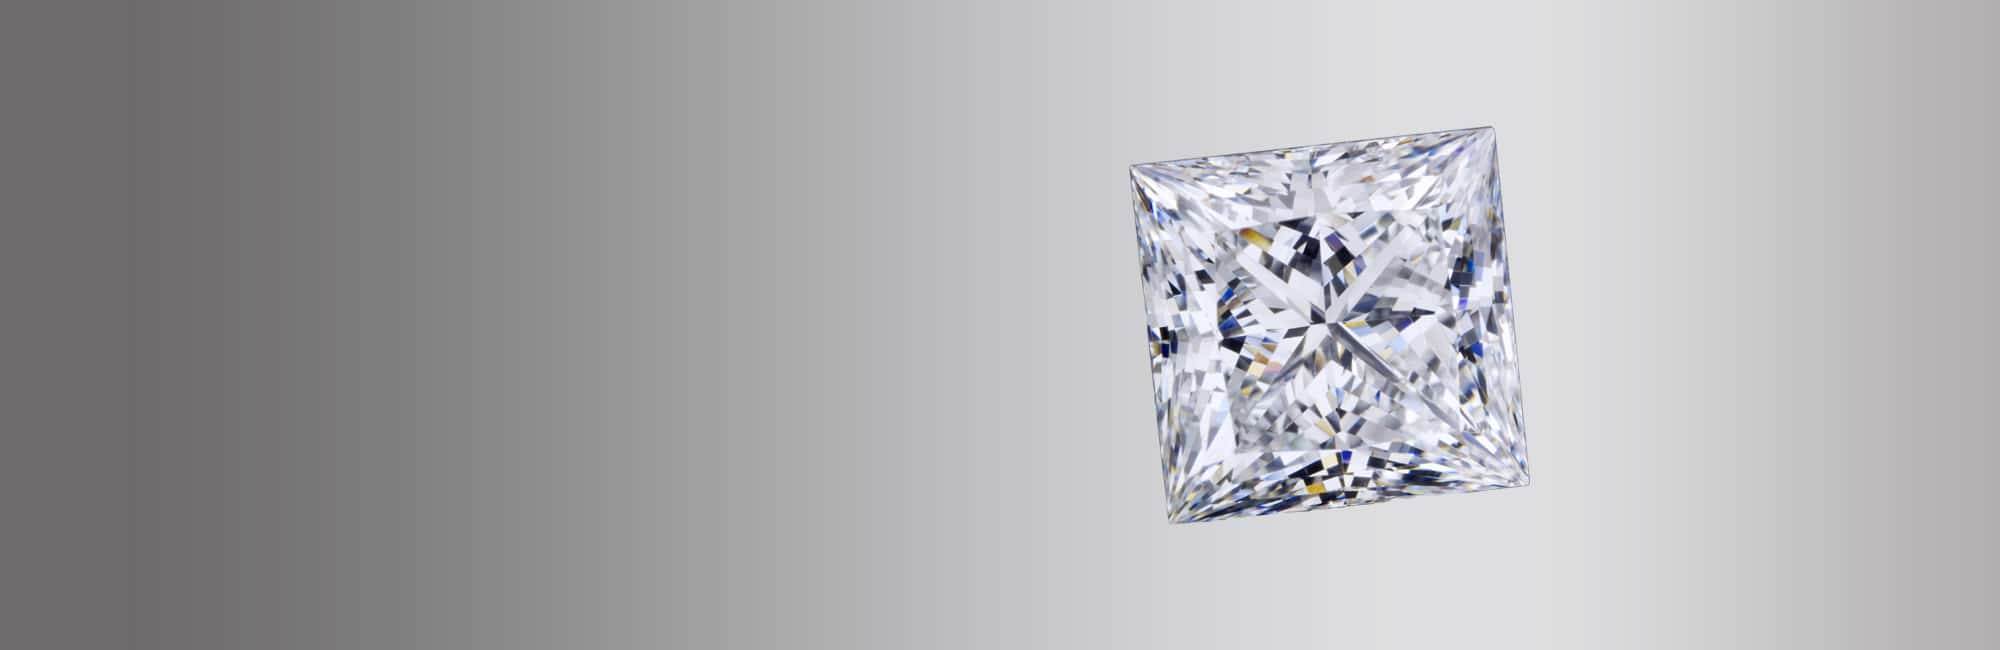 trusted shop firemark slide diamond s barclay jewelry your jewelers fire gemstone source for